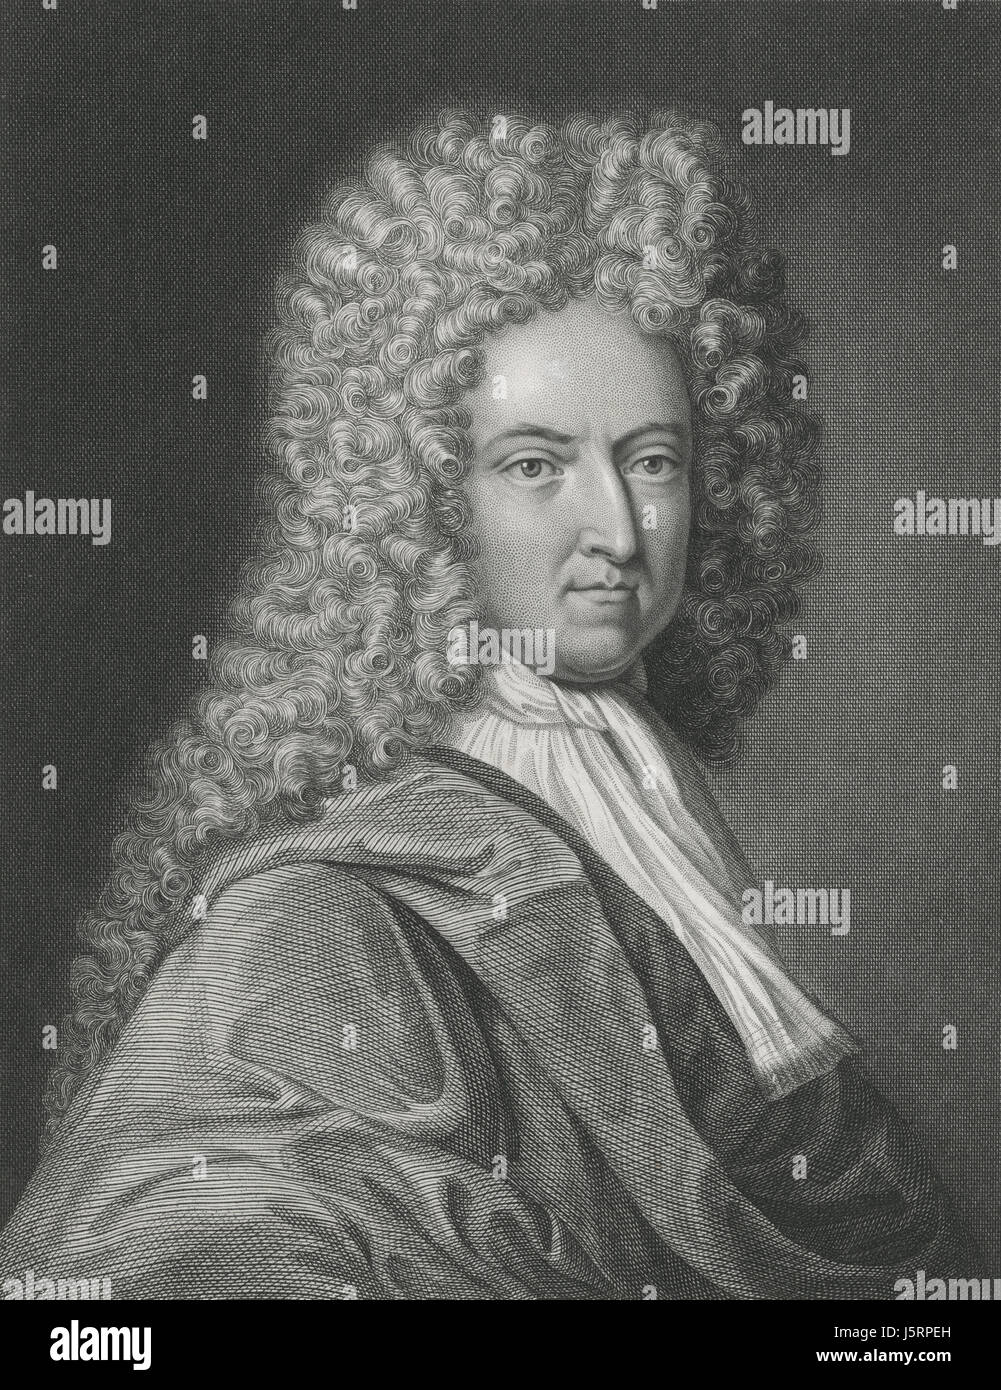 a biography of daniel defoe an english novelist Novelist, pamphleteer and journalist, daniel defoe is considered, along with richardson, the founder of the english novel he was born in london in 1660 to a family.